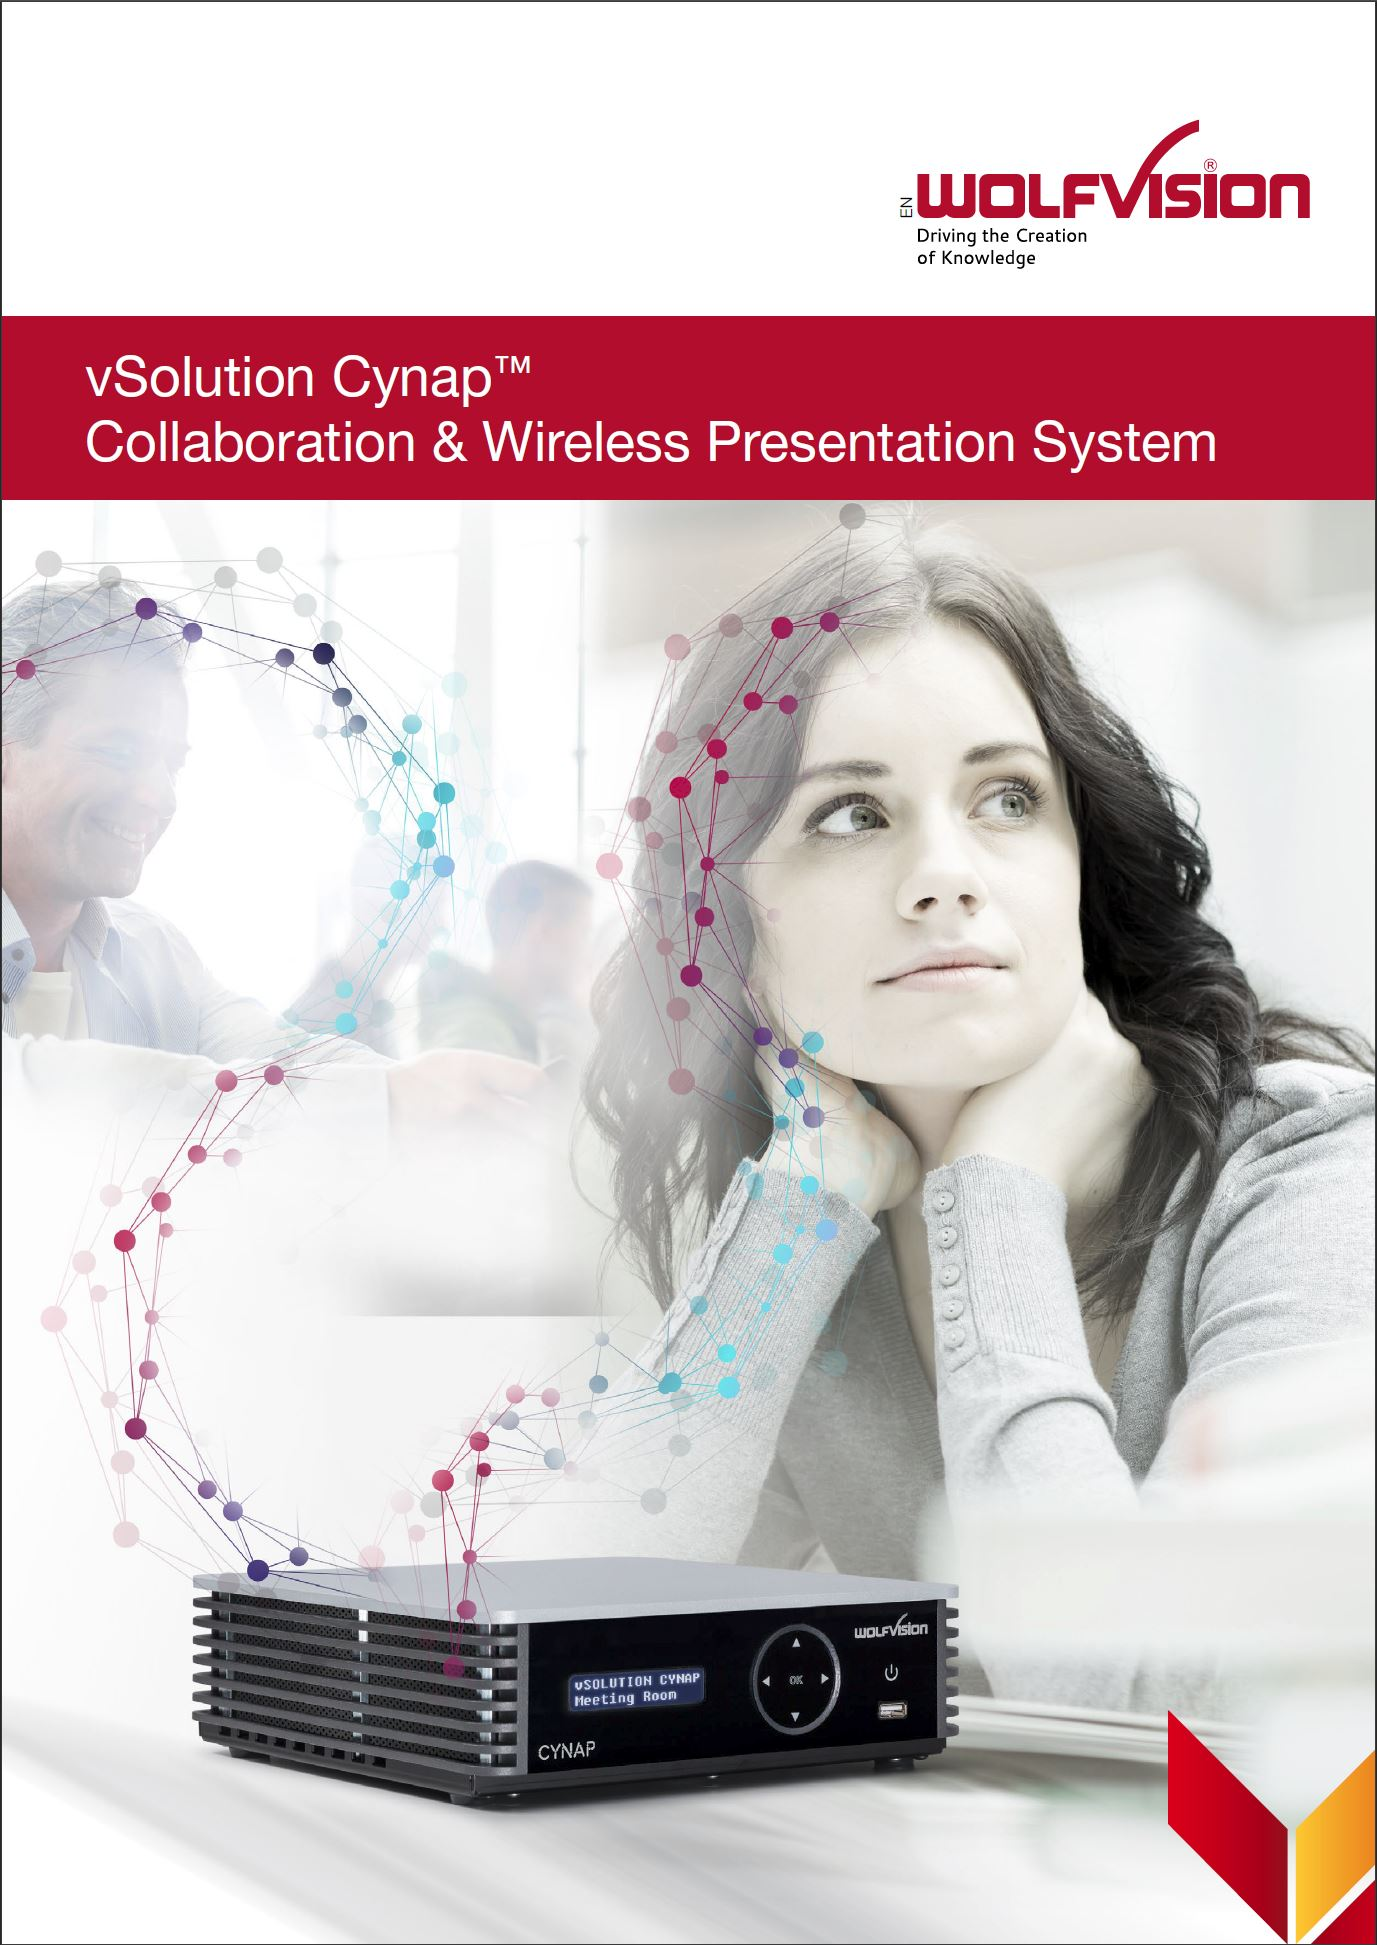 WolfVision Cynap presentation and collaboration system brochure